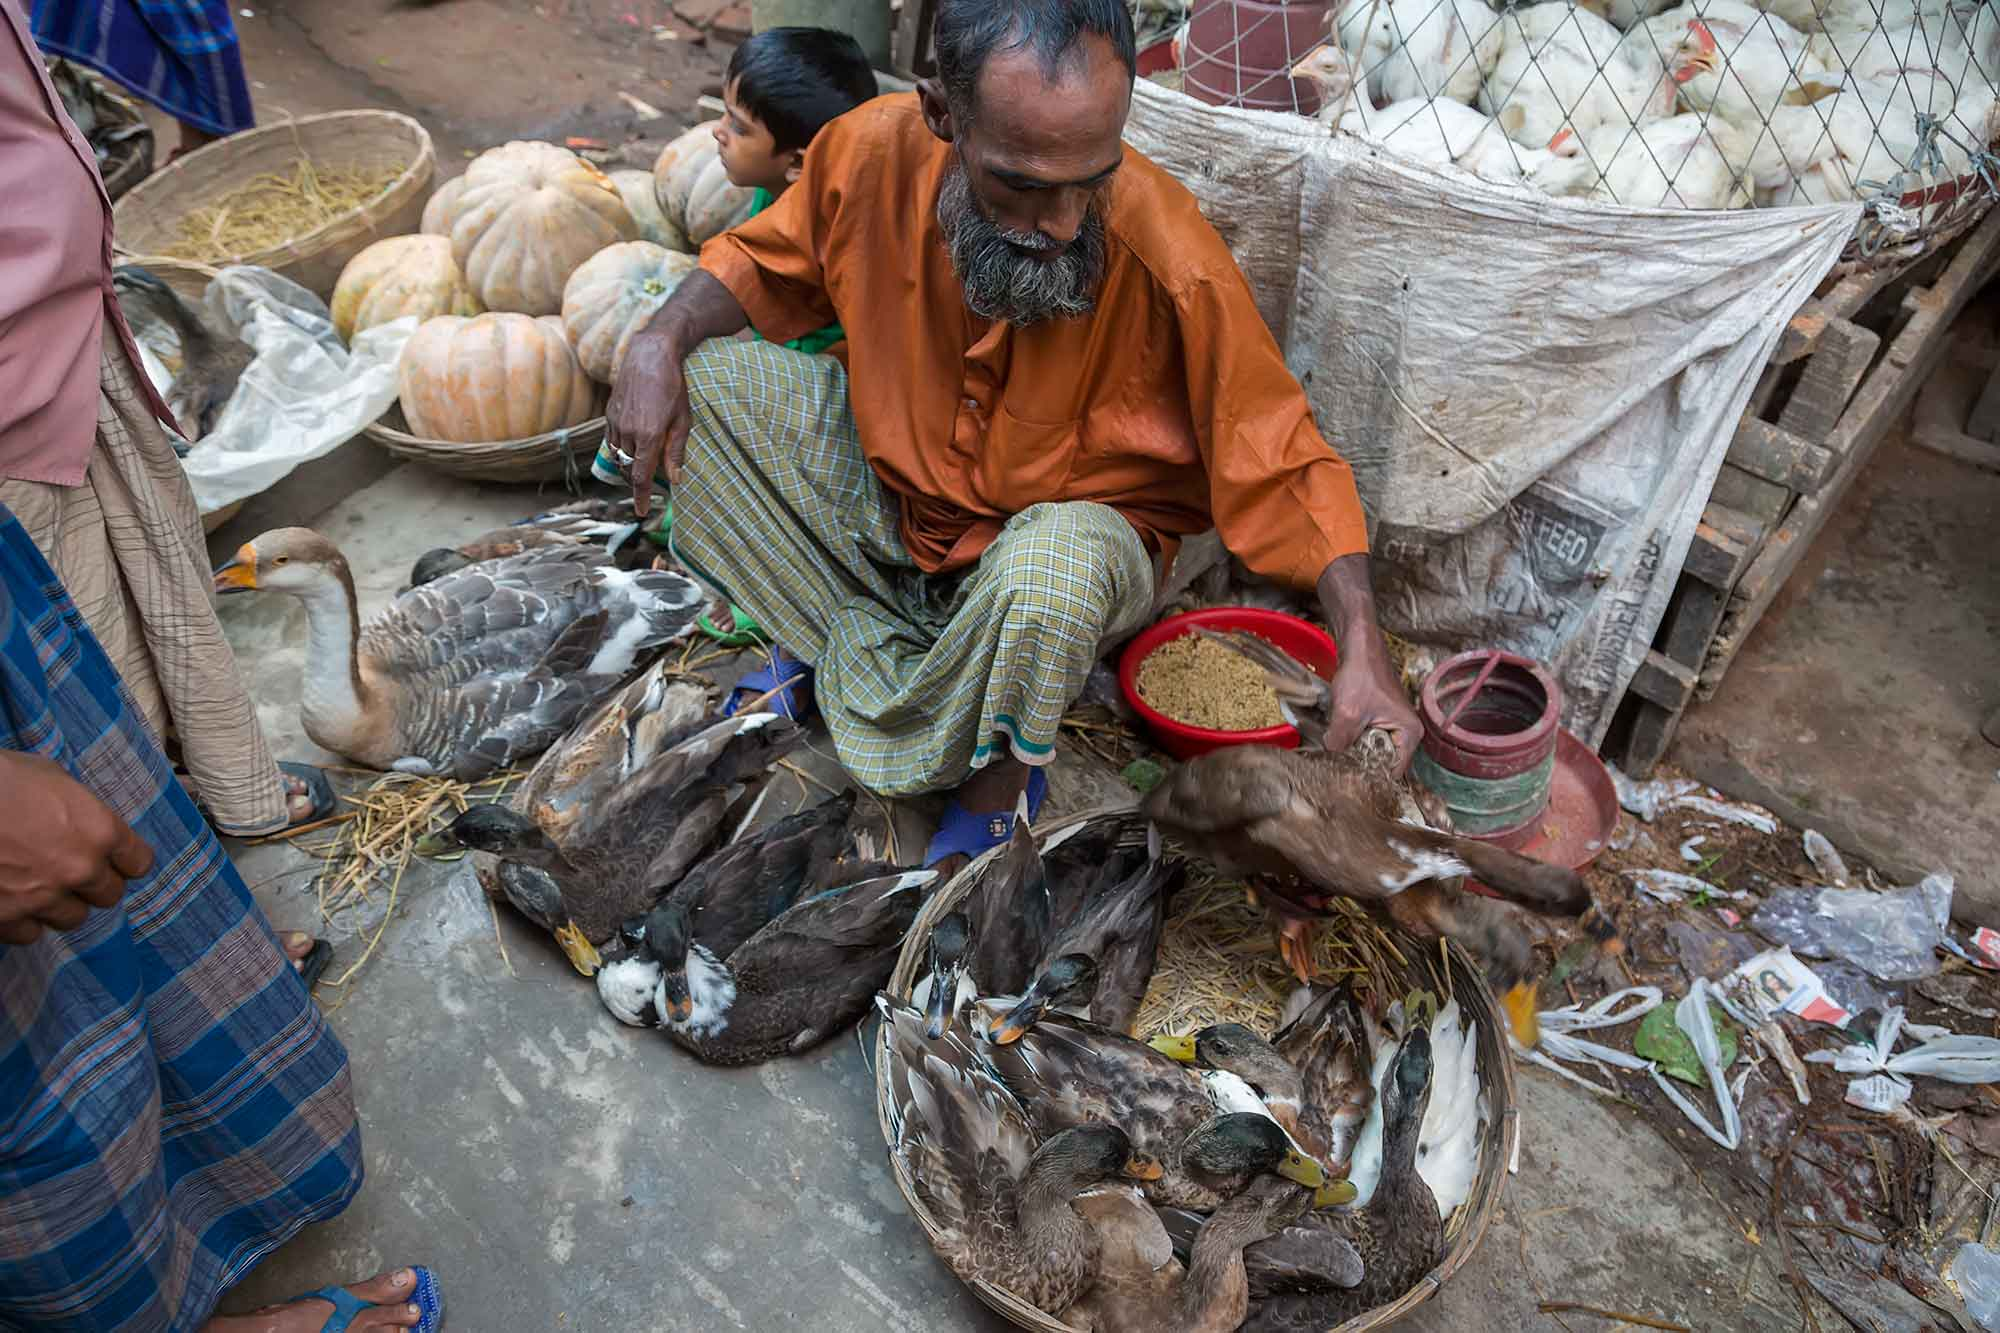 Man selling ducks in the streets of Dhaka, Bangladesh. © Ulli Maier & Nisa Maier